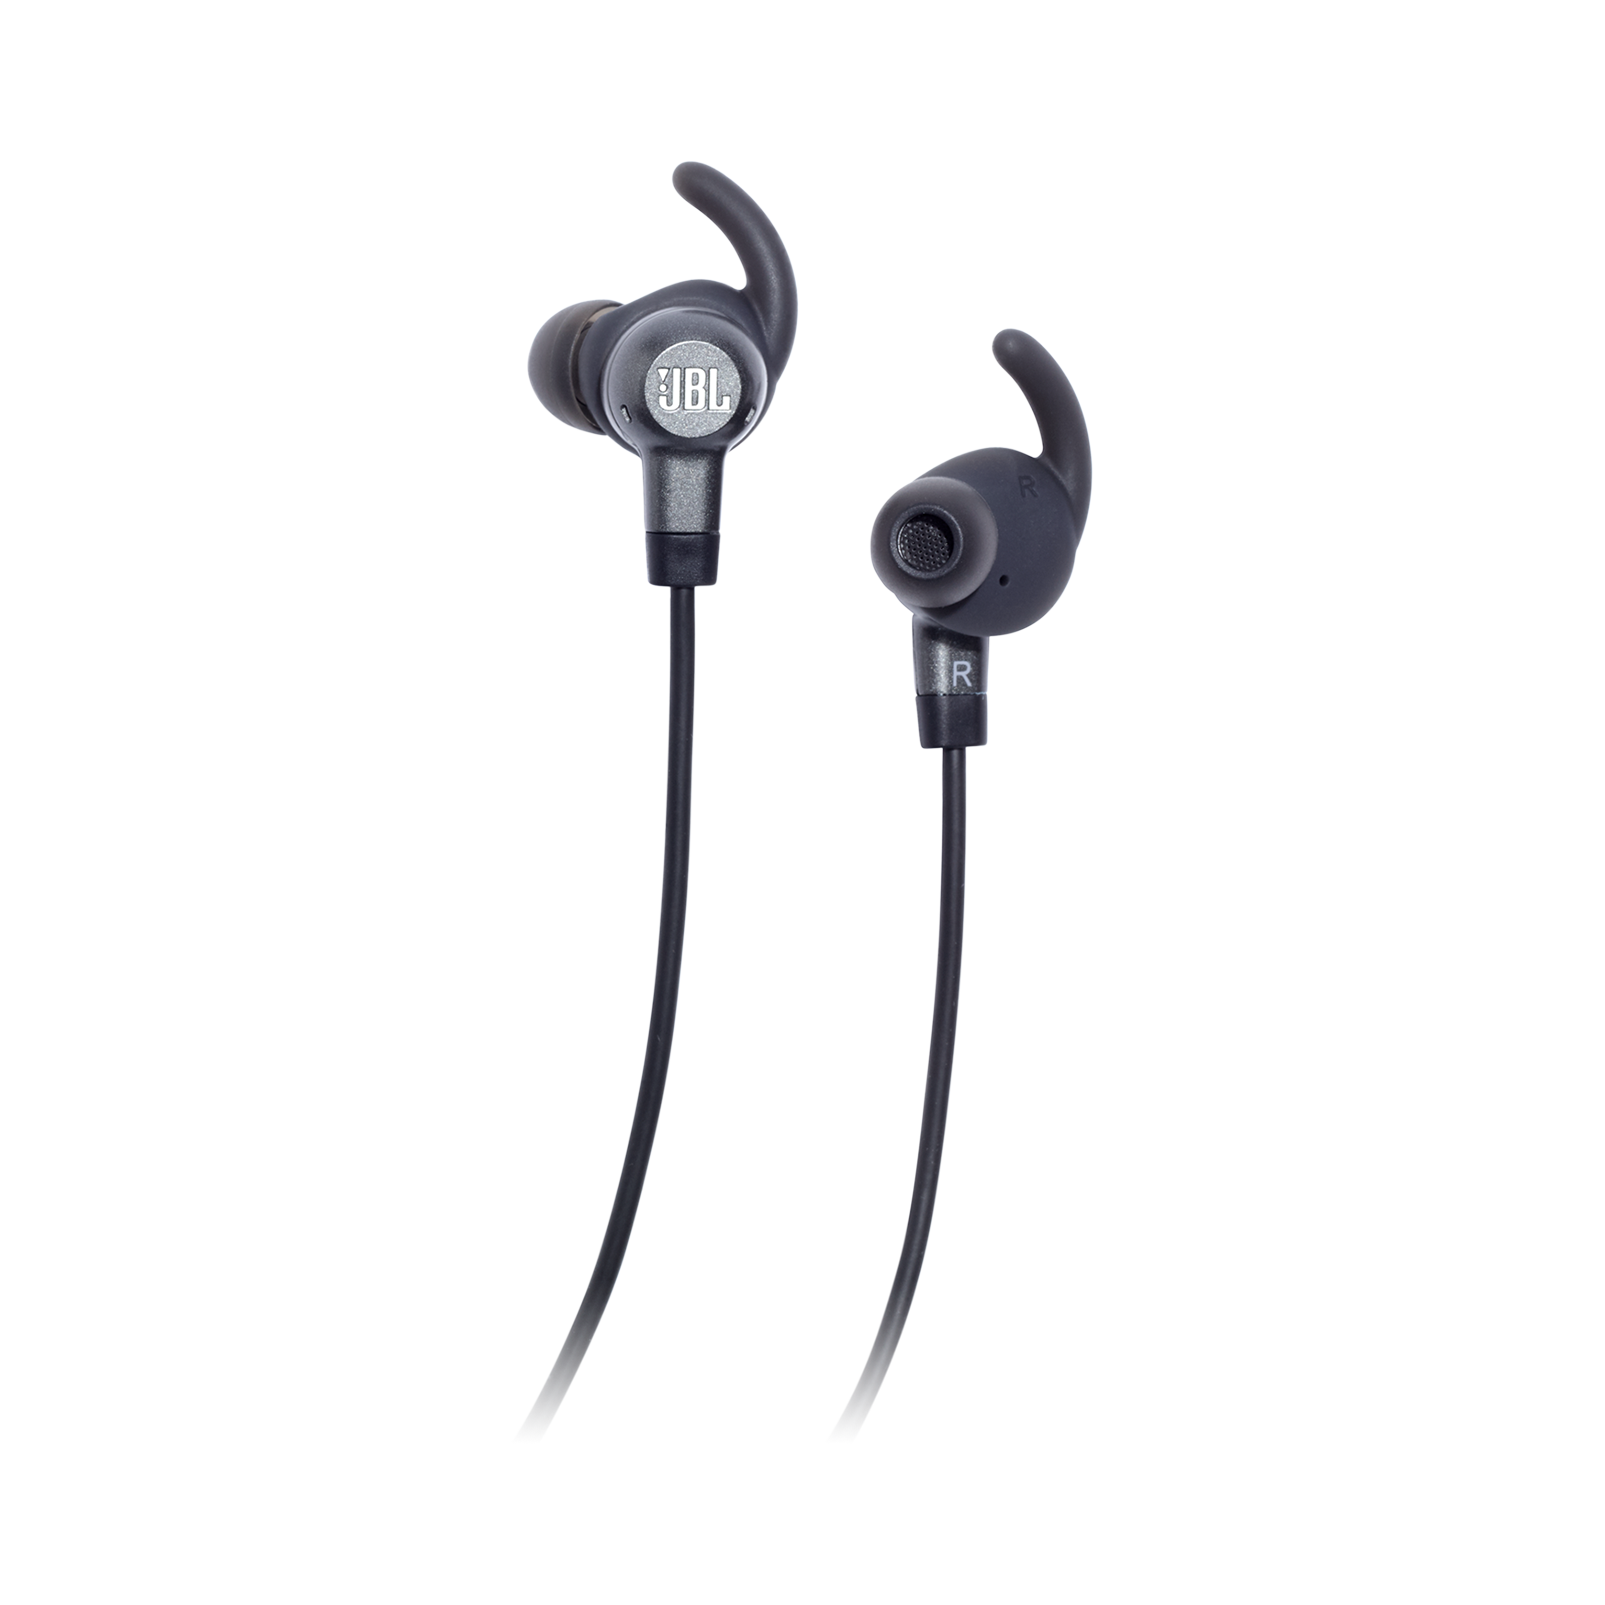 JBL EVEREST™ ELITE 150NC - Gun Metal - Wireless In-Ear NC headphones - Detailshot 1